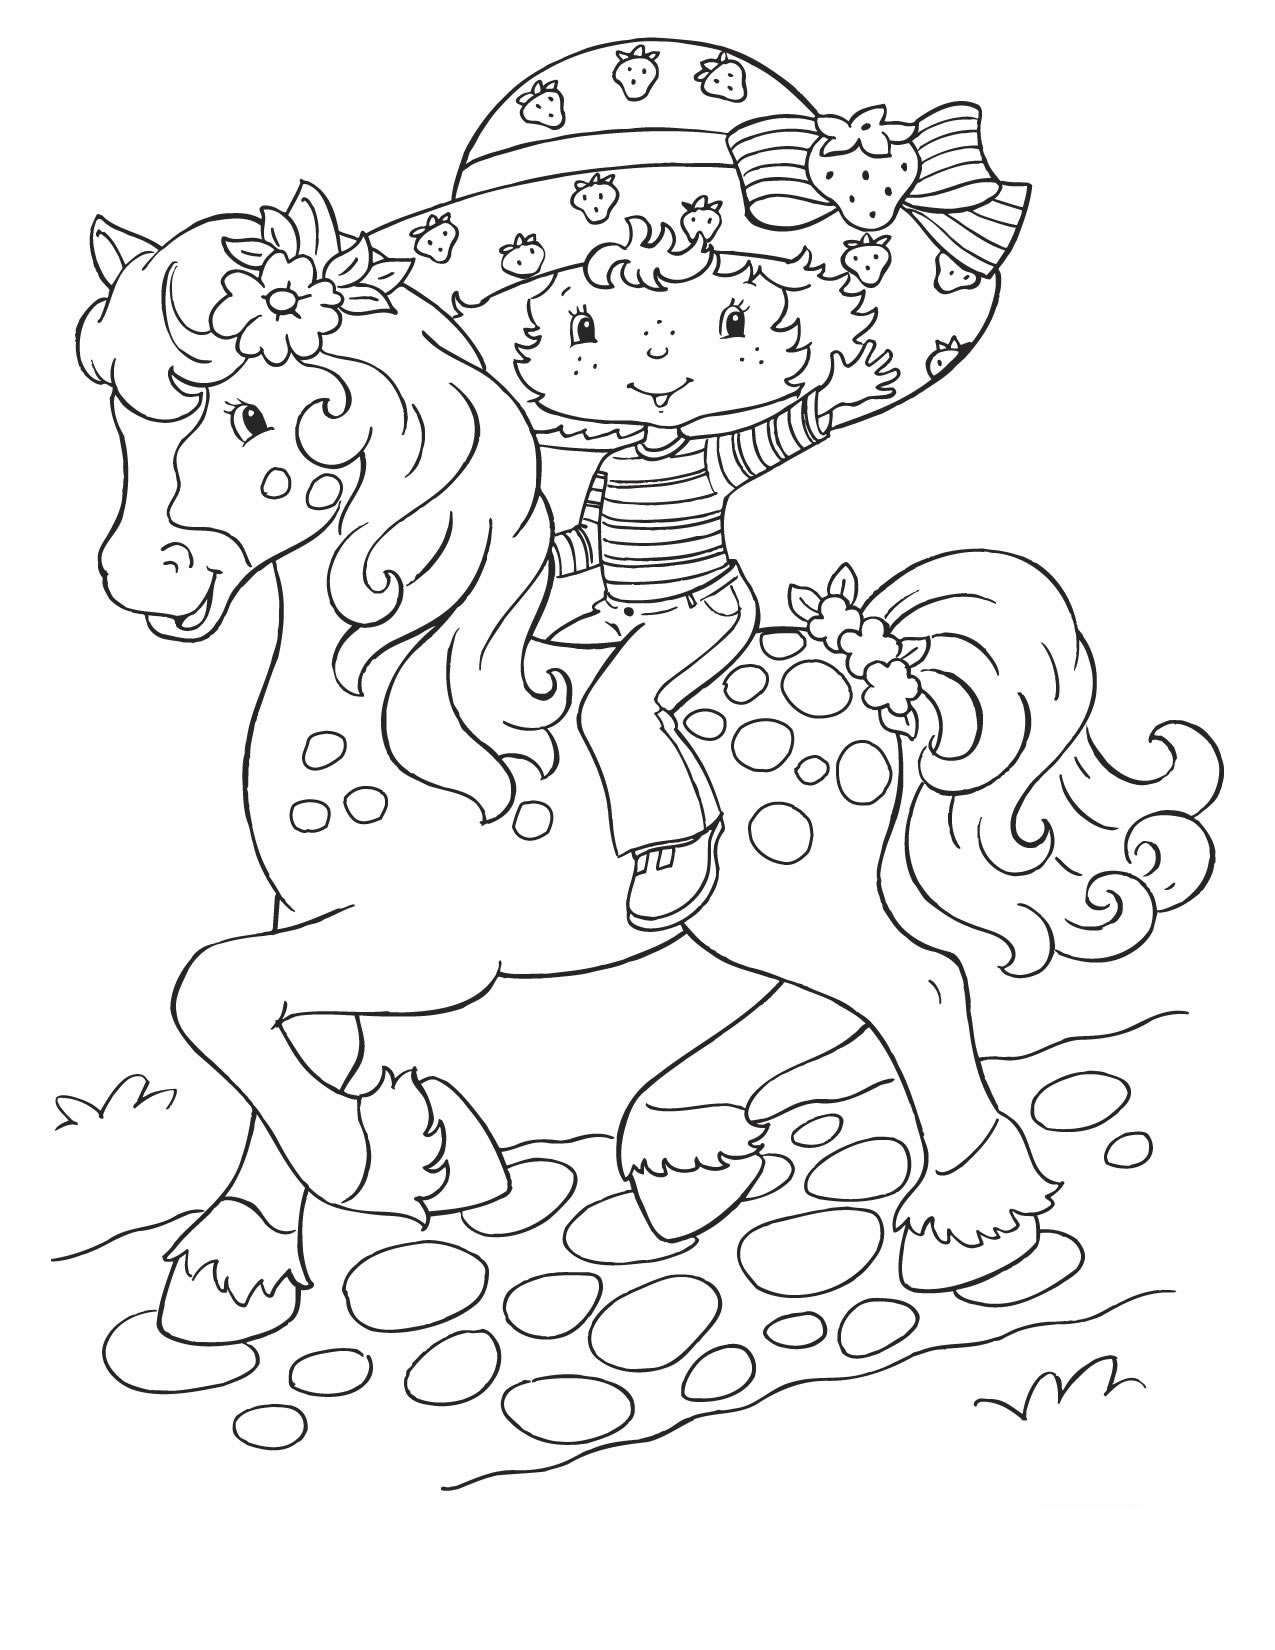 Strawberry Shortcake Christmas Coloring Pages